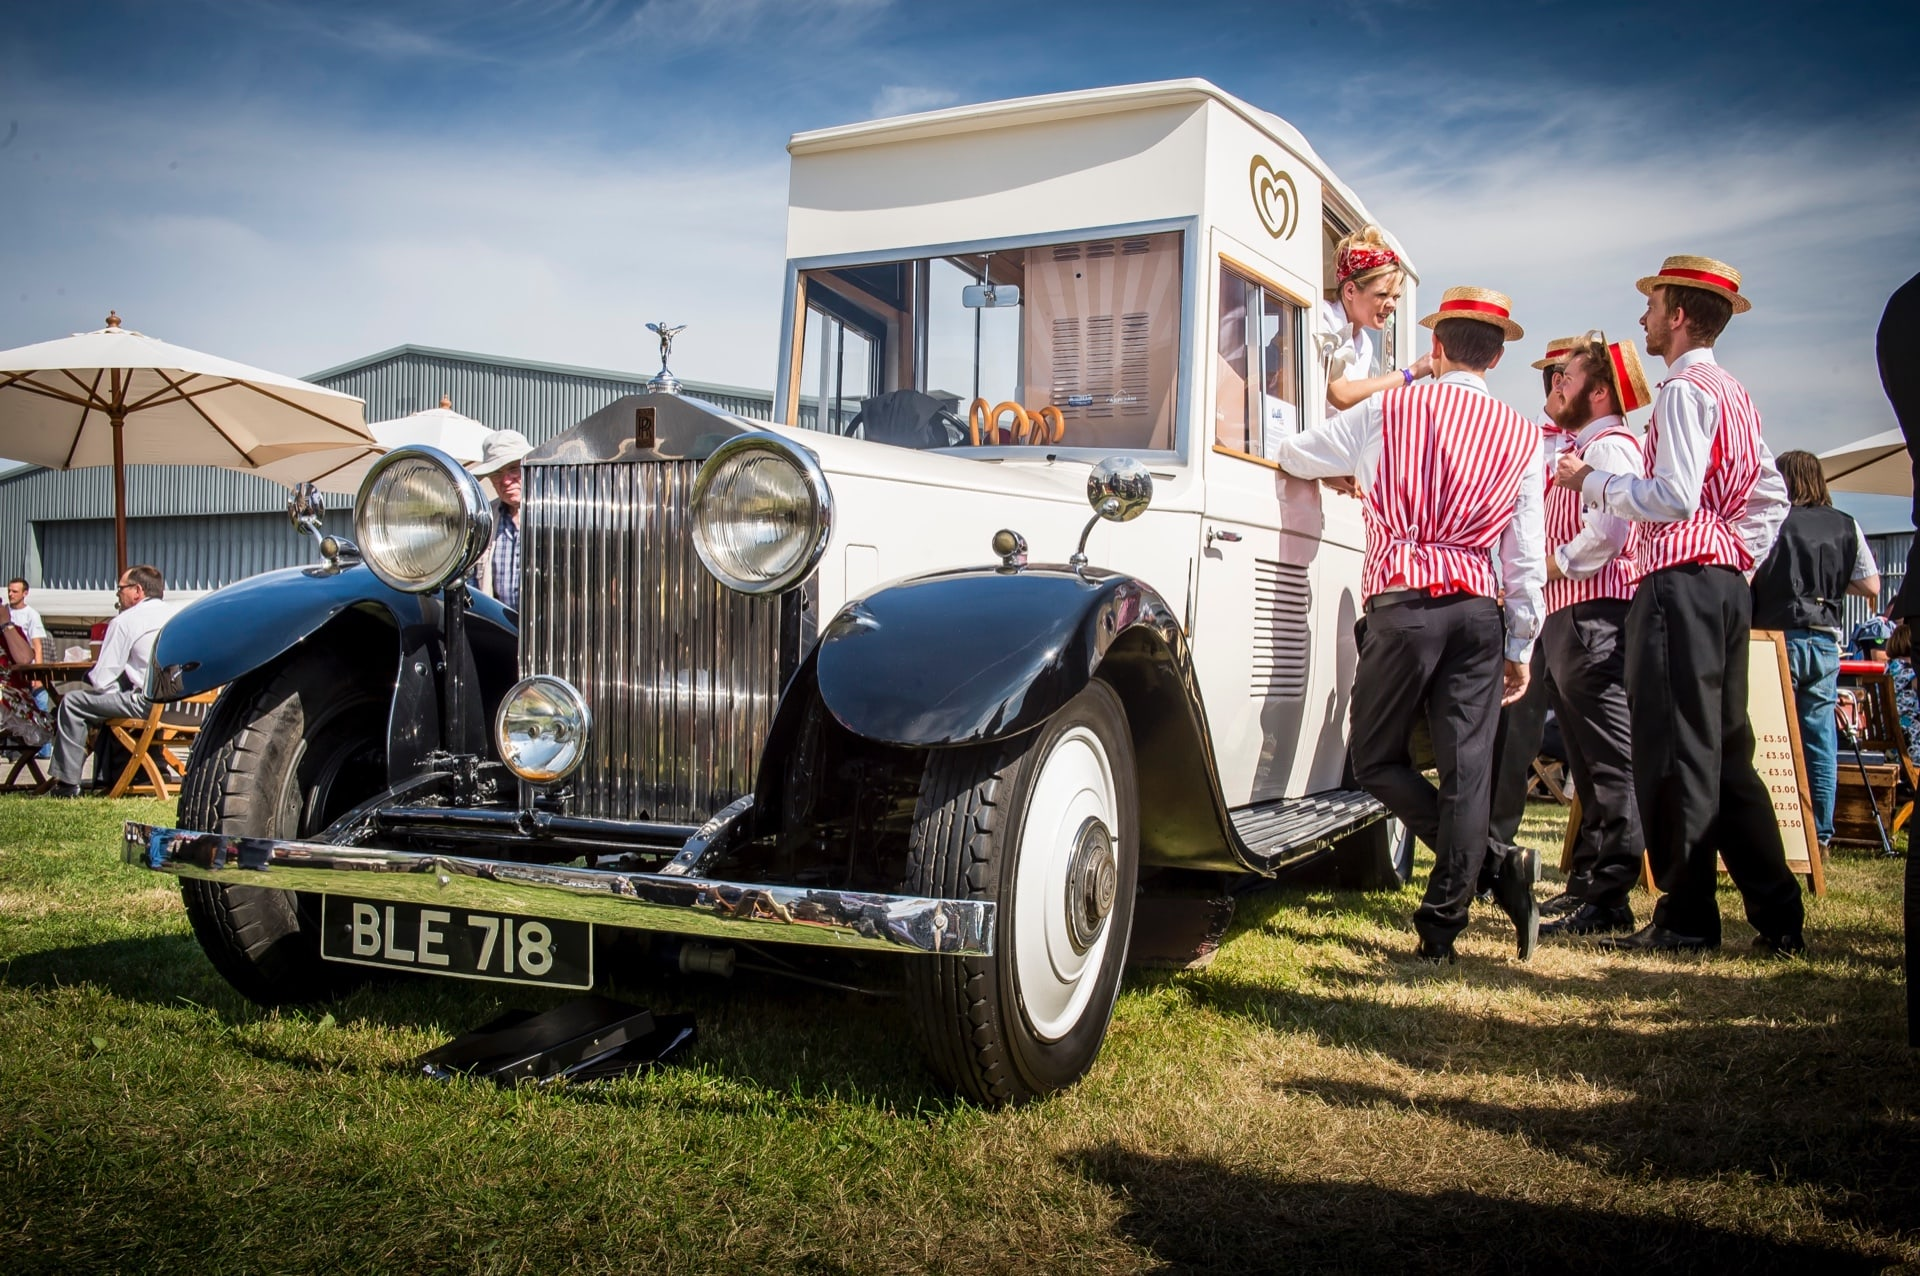 Rolls-Royce car converted into an ice cream van at the Rolls-Royce Goodwood Revival experience.